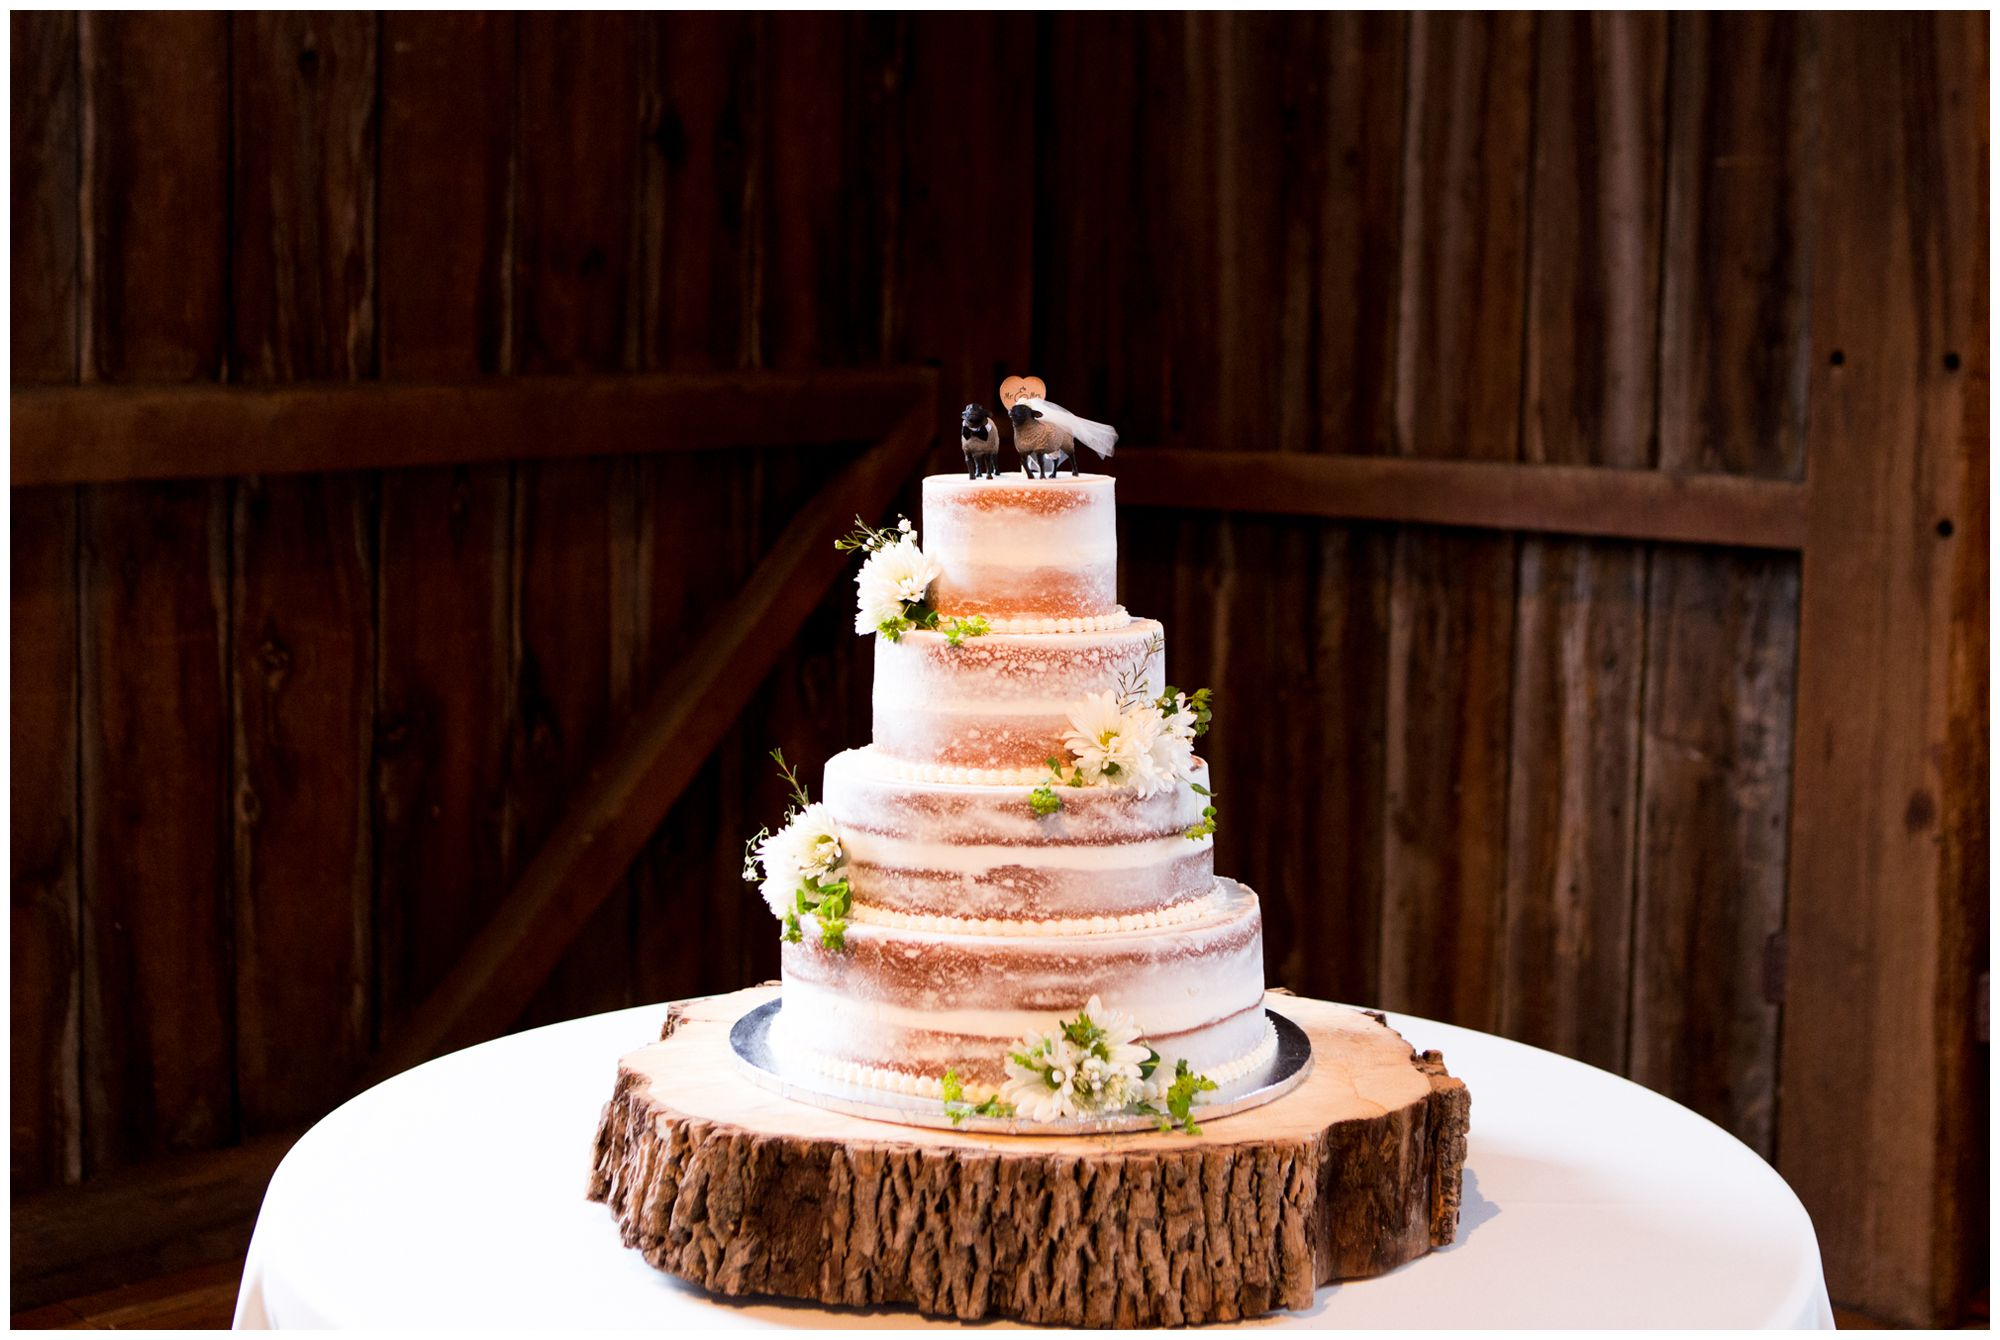 rustic naked cake at Mustard Seed Gardens wedding reception in Noblesville Indiana